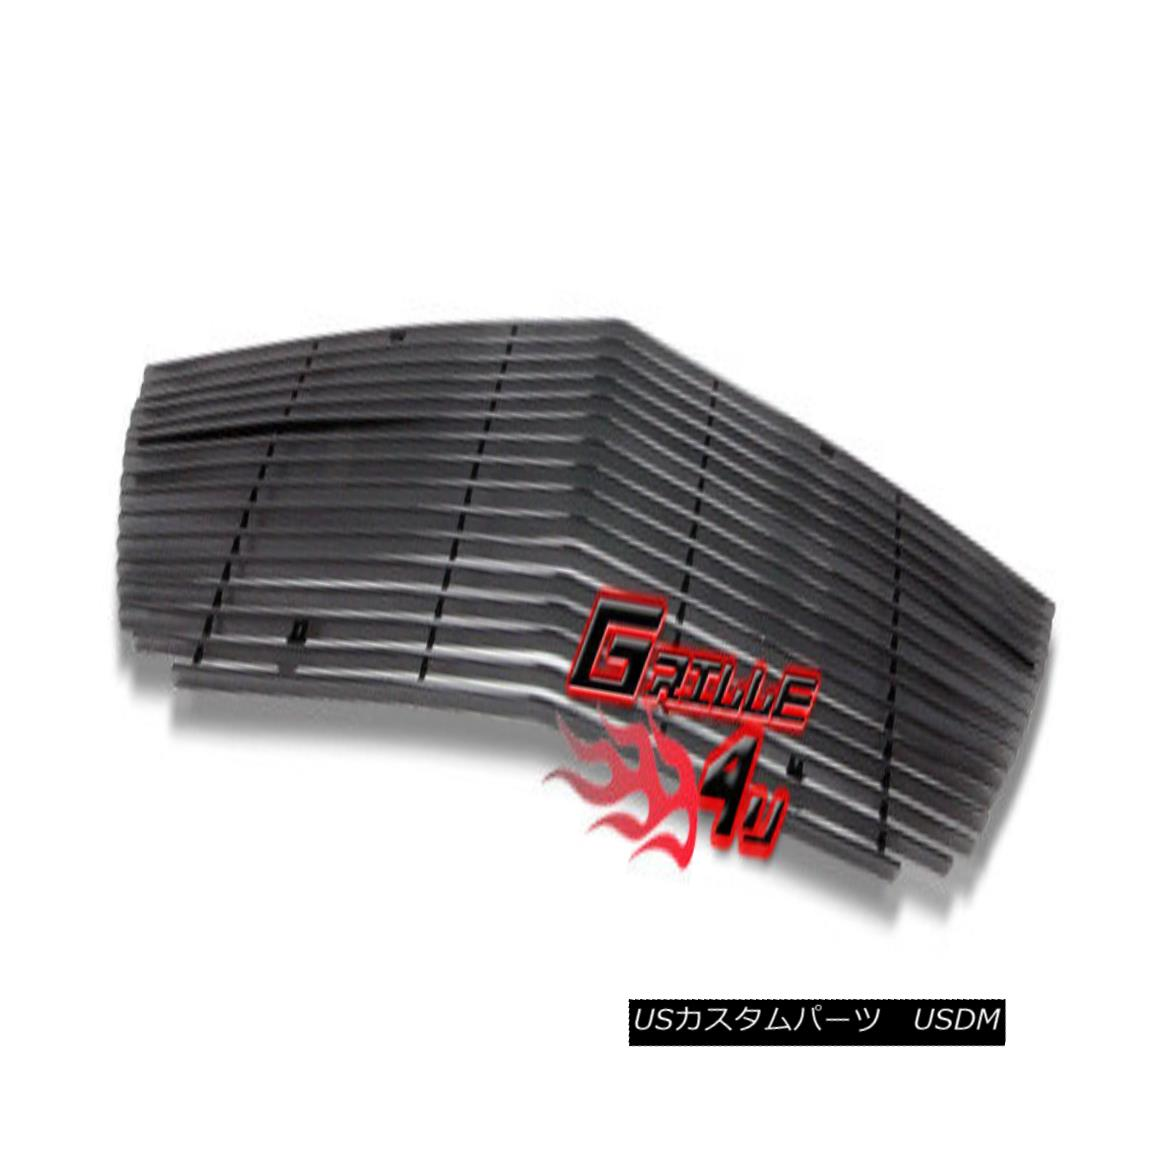 グリル For 07-09 Ford Mustang Shelby GT 500 Black Billet Premium Grille 07-09 Ford Mustang Shelby GT 500ブラックビレットプレミアムグリル